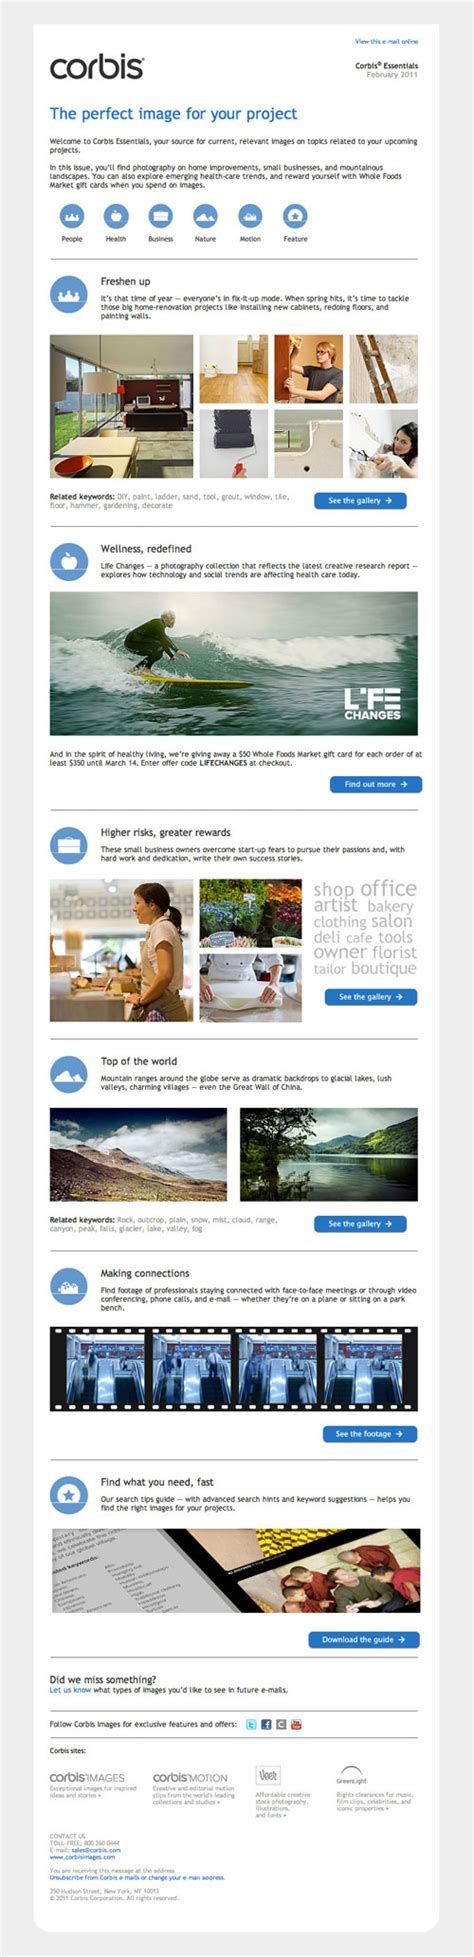 design inspiration email creating html emails how to and design inspiration